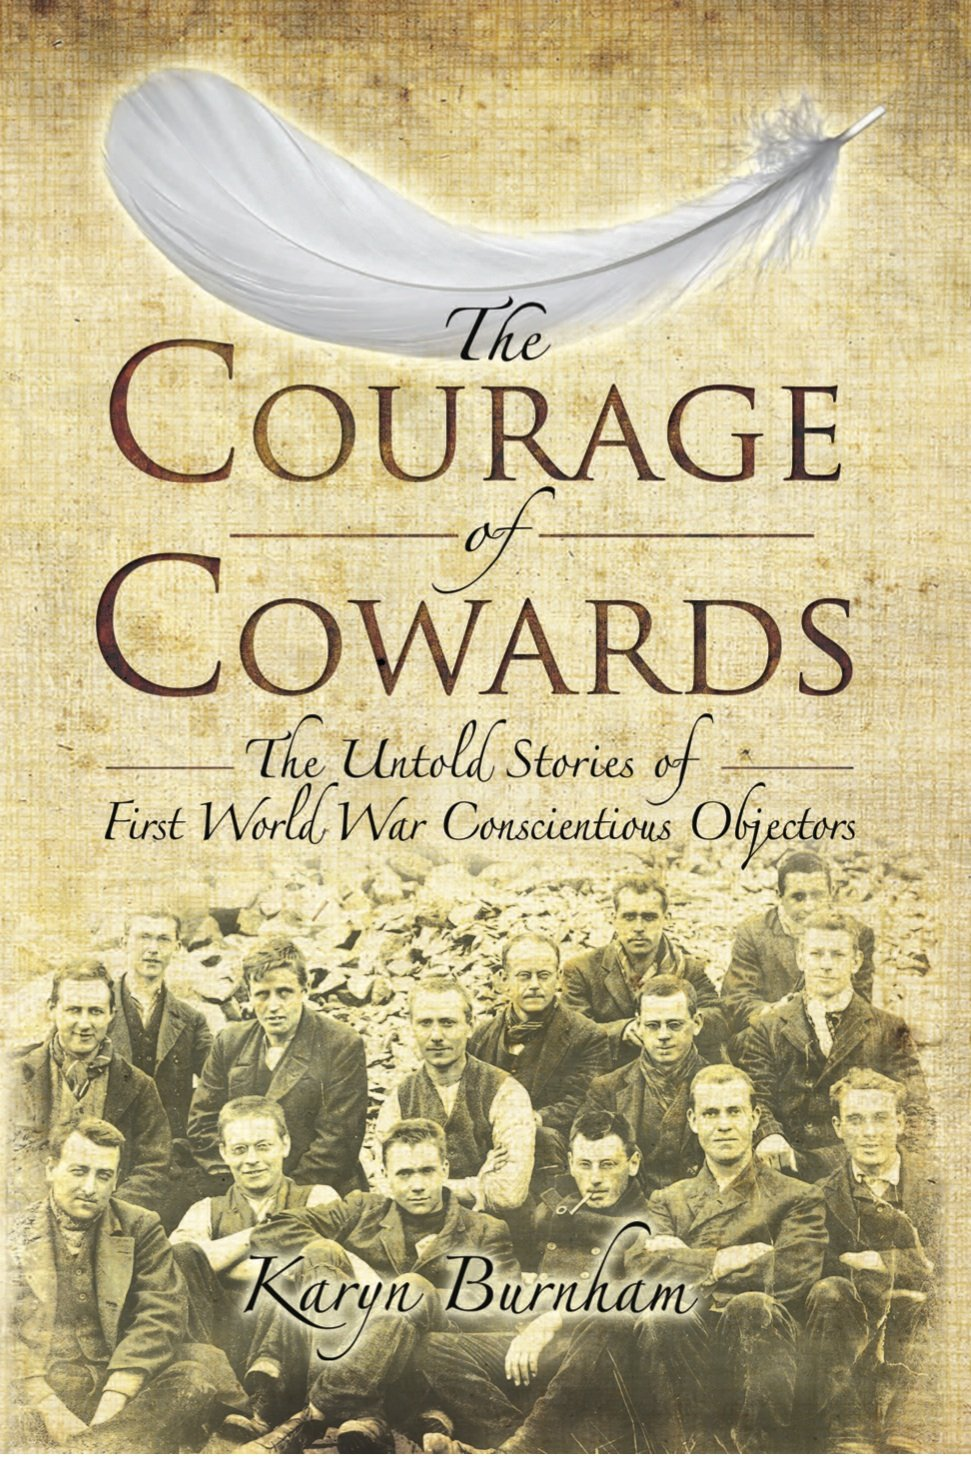 Image result for the courage of cowards